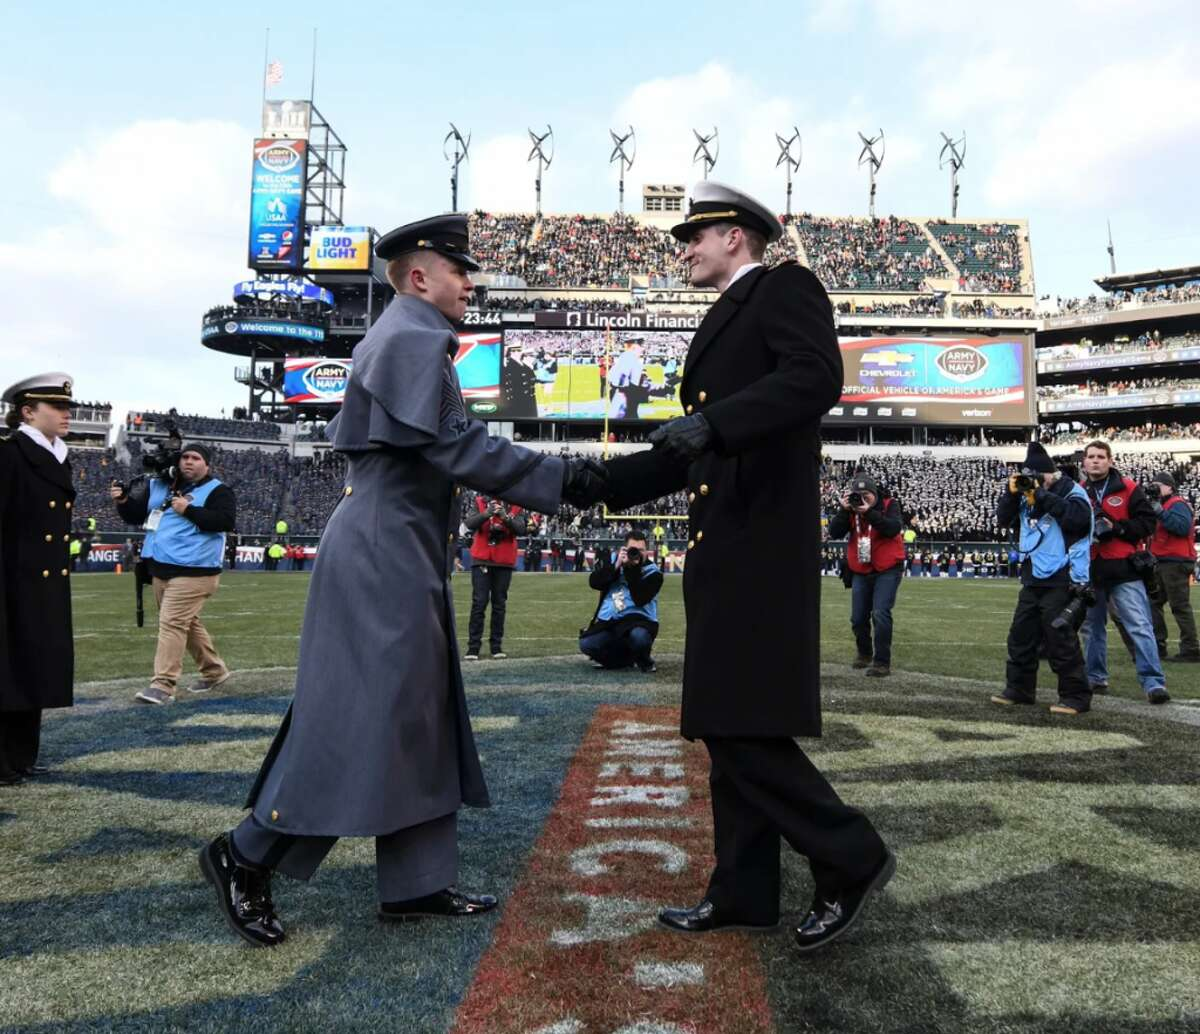 Darien's Ian Burgoyne, right, is Brigade Commander. At the Army/Navy game, Ian lead the midshipmen onto the field in Philadelphia.On left is Army's First Captain David Bindon. - Photo courtesy U.S. Navy